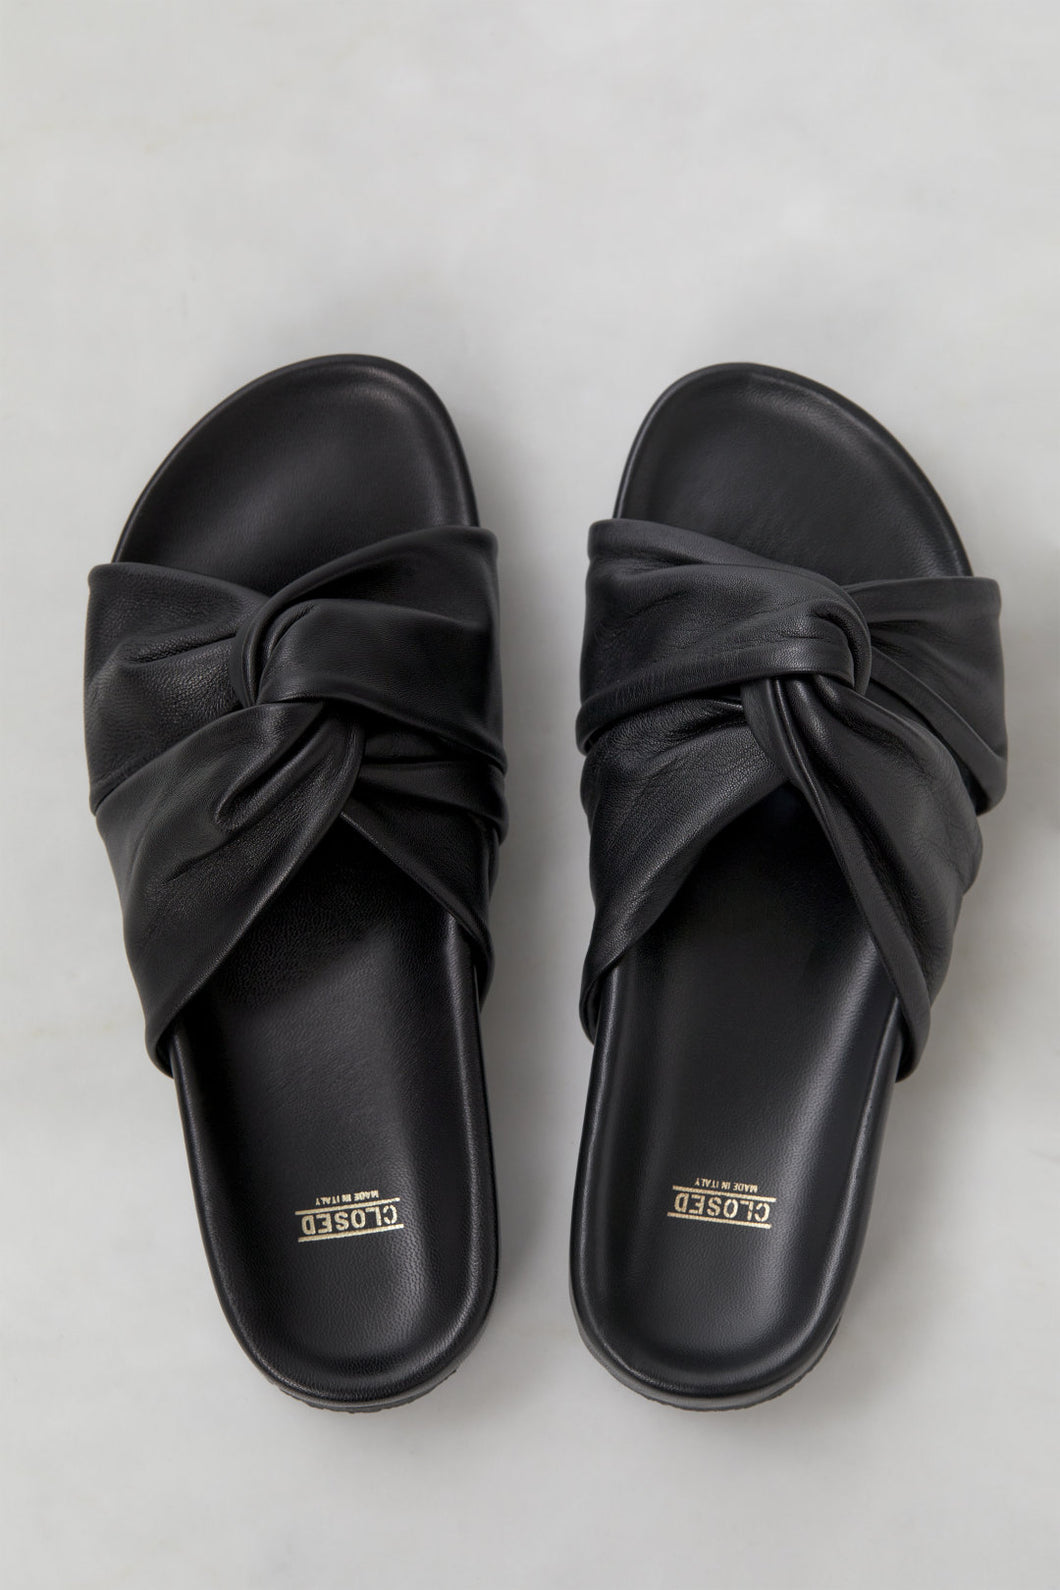 Closed cross sandals Black